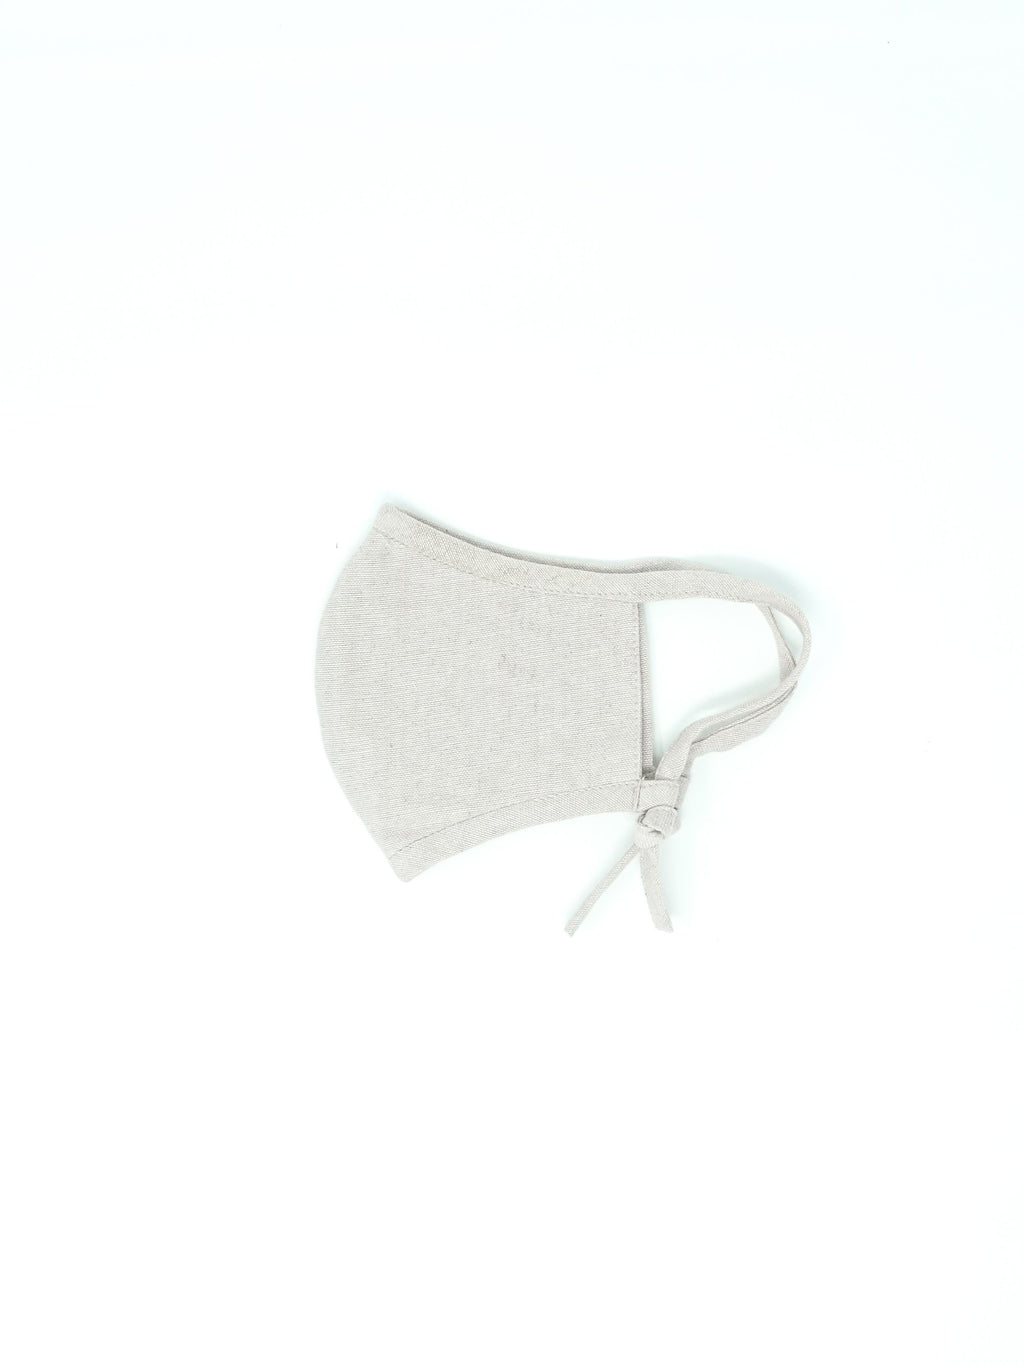 Cotton Face Mask - Adjustable Style